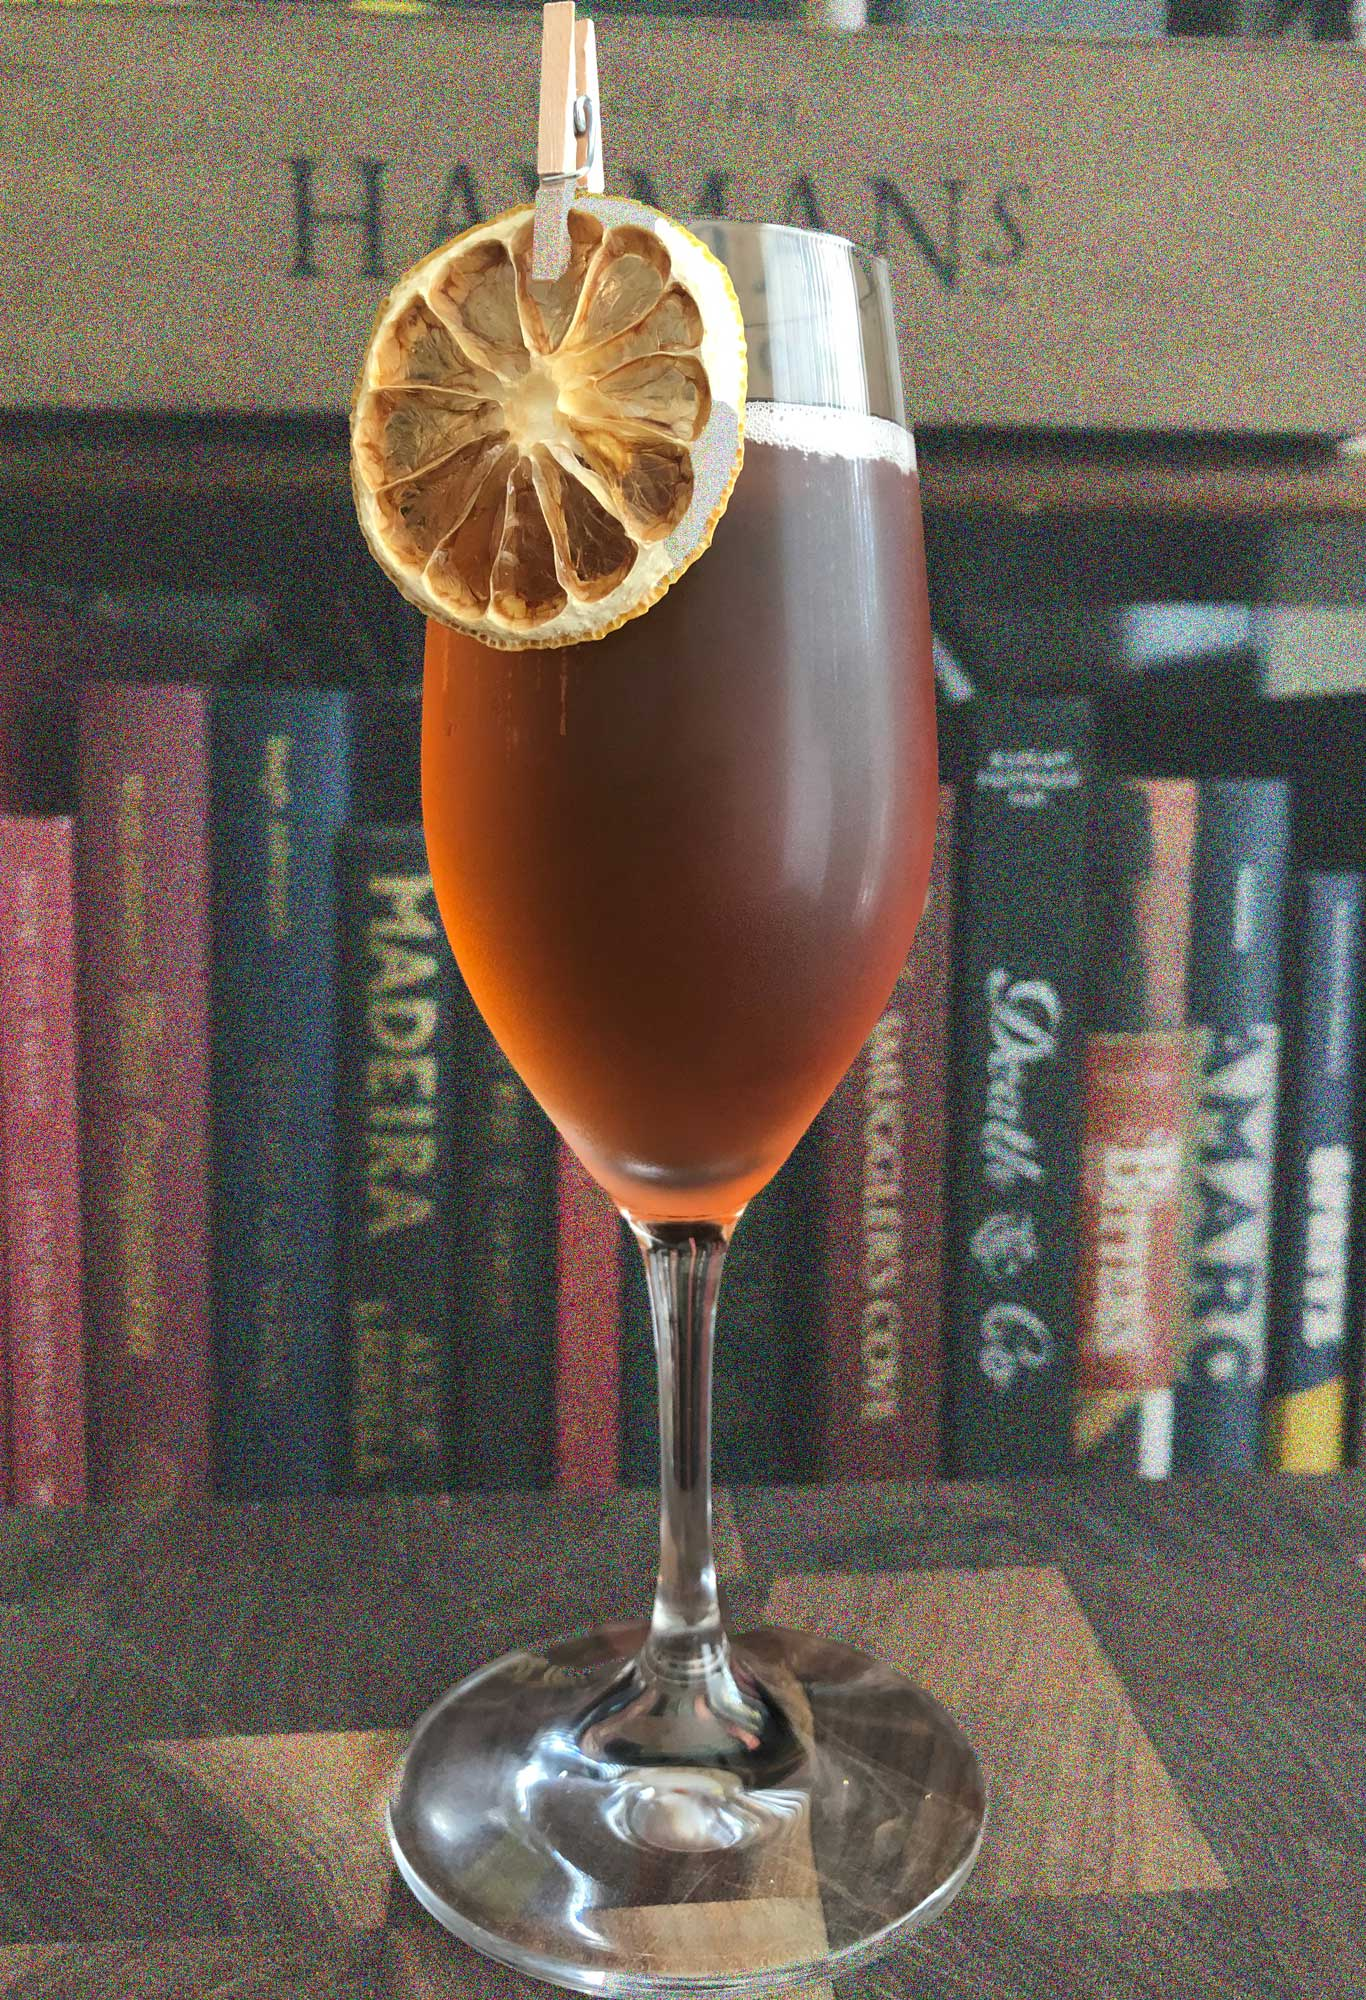 An example of the Merry Berries, the mixed drink (cocktail) featuring Hayman's Sloe Gin, Pasubio Vino Amaro, and sparkling wine; photo by Lee Edwards